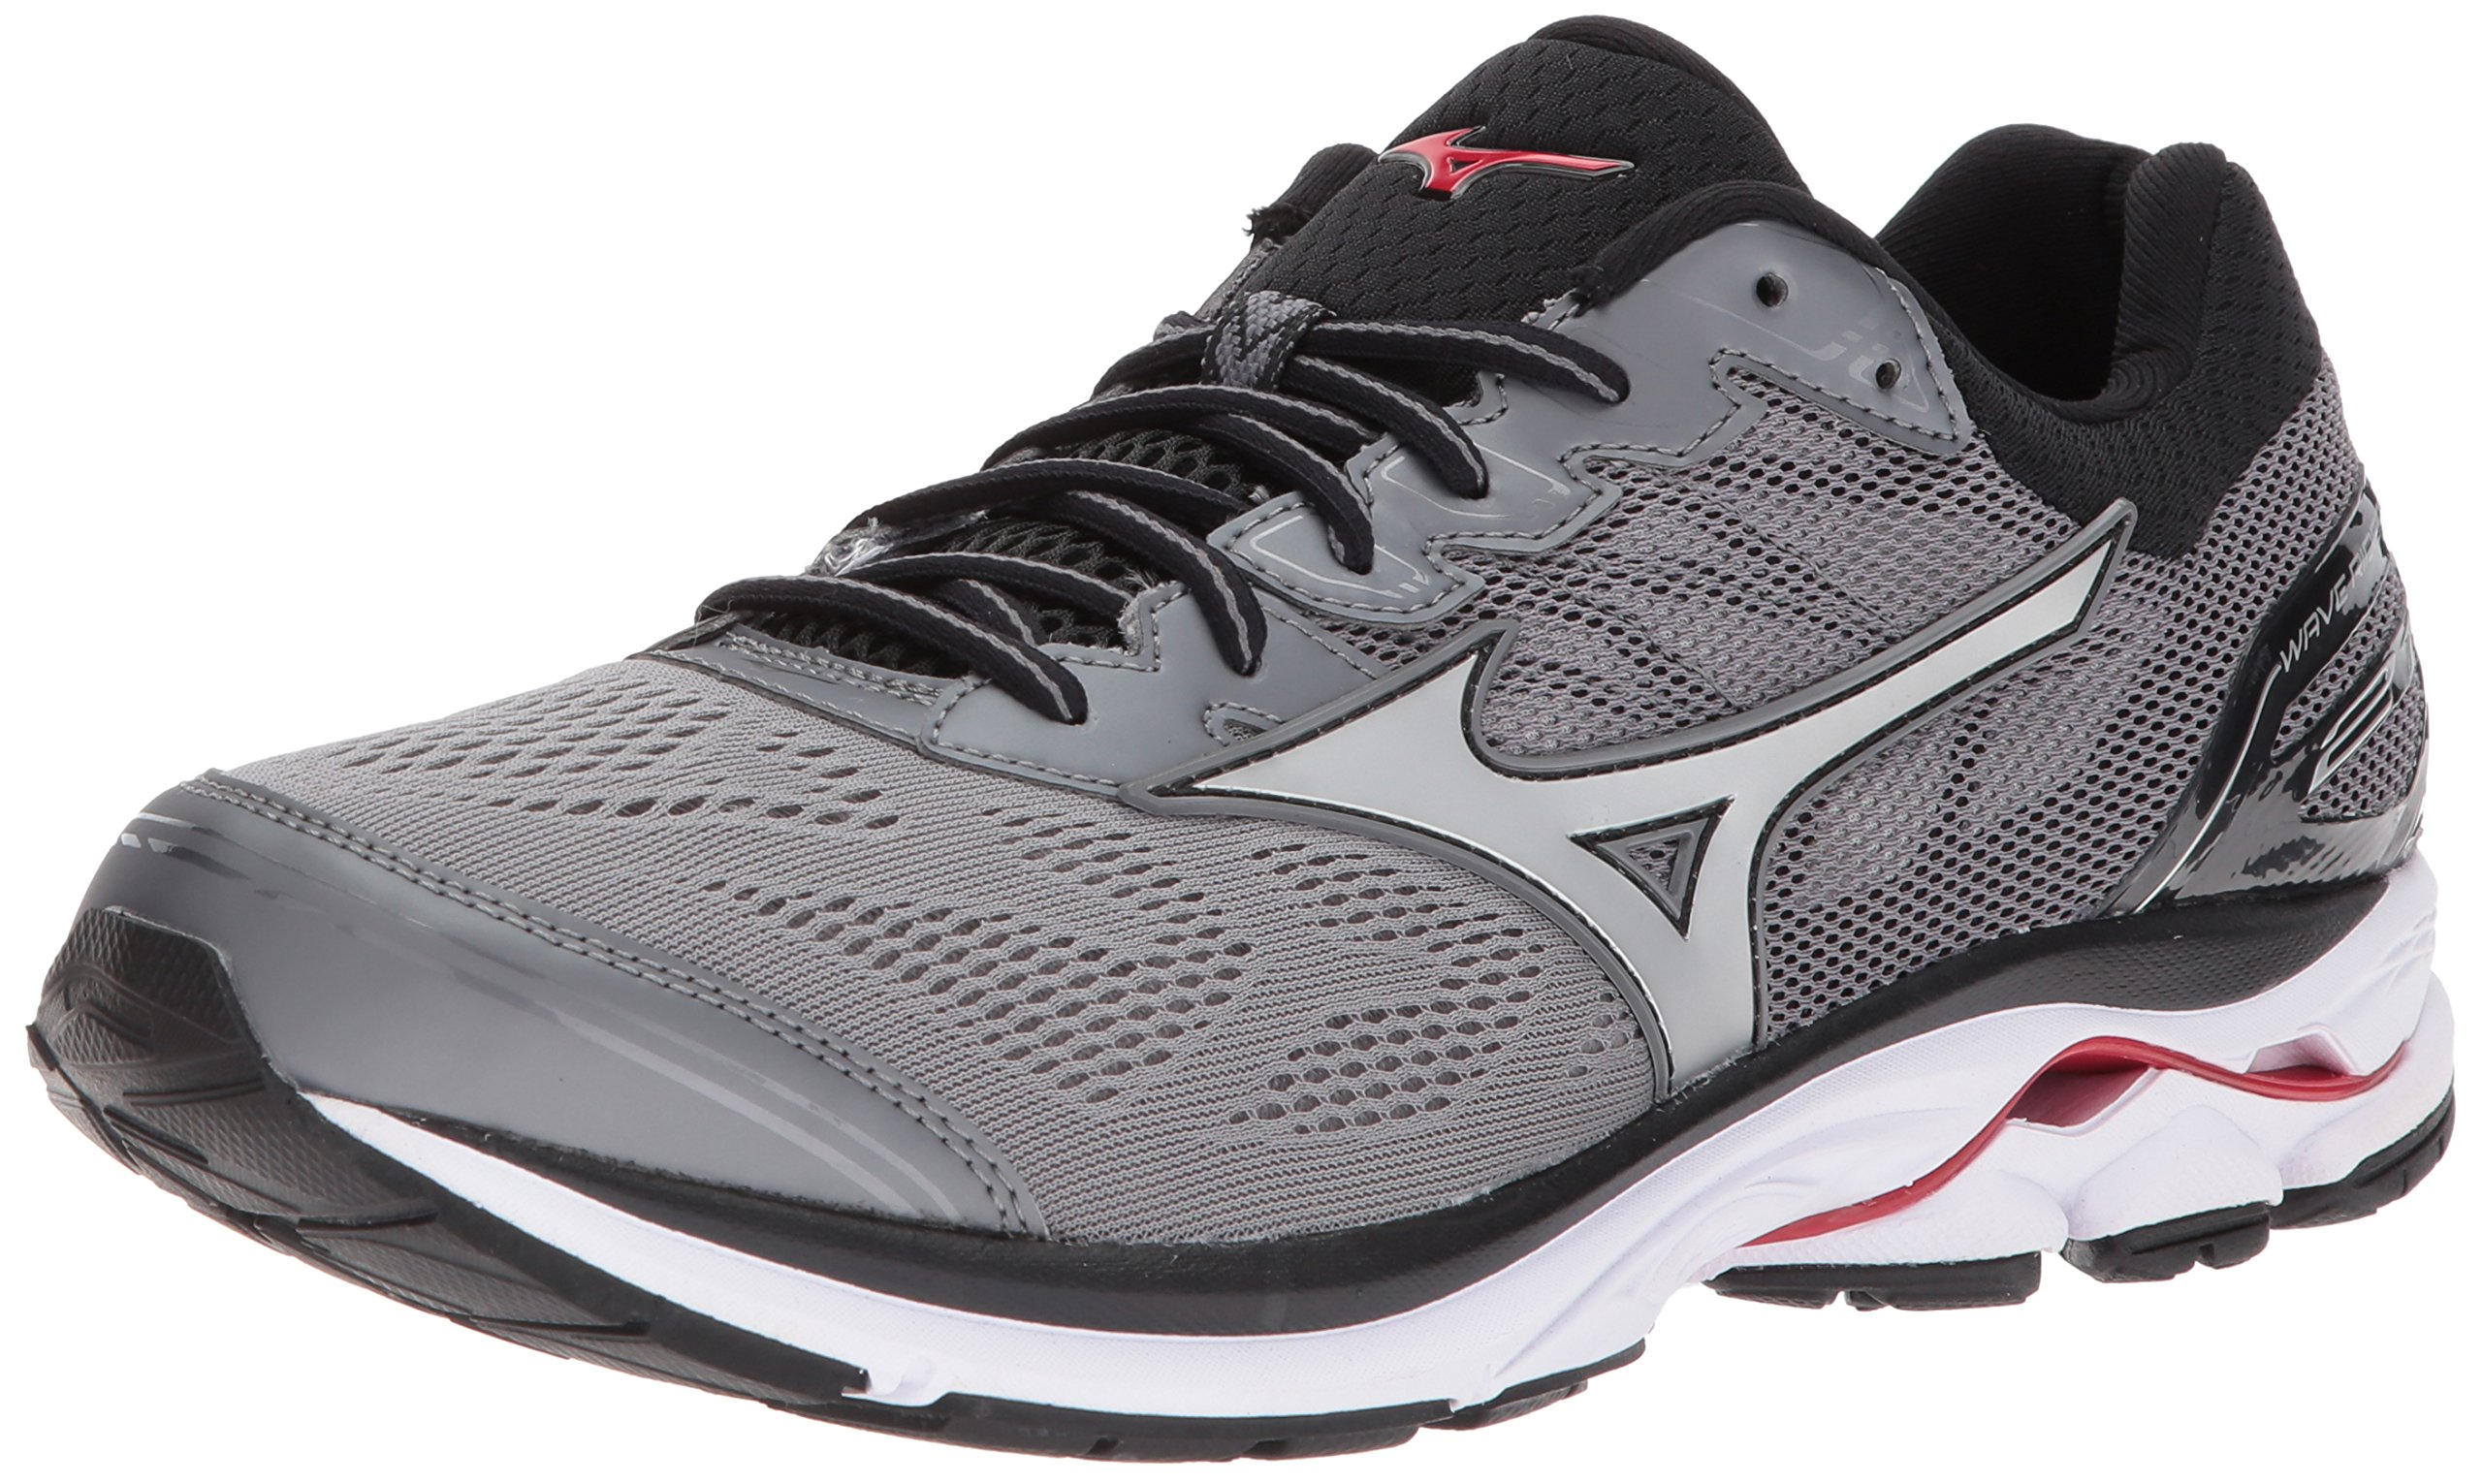 Mizuno Men's Wave Rider 21 Running Shoe, Quiet Shade/Silver, 11 D US by Mizuno